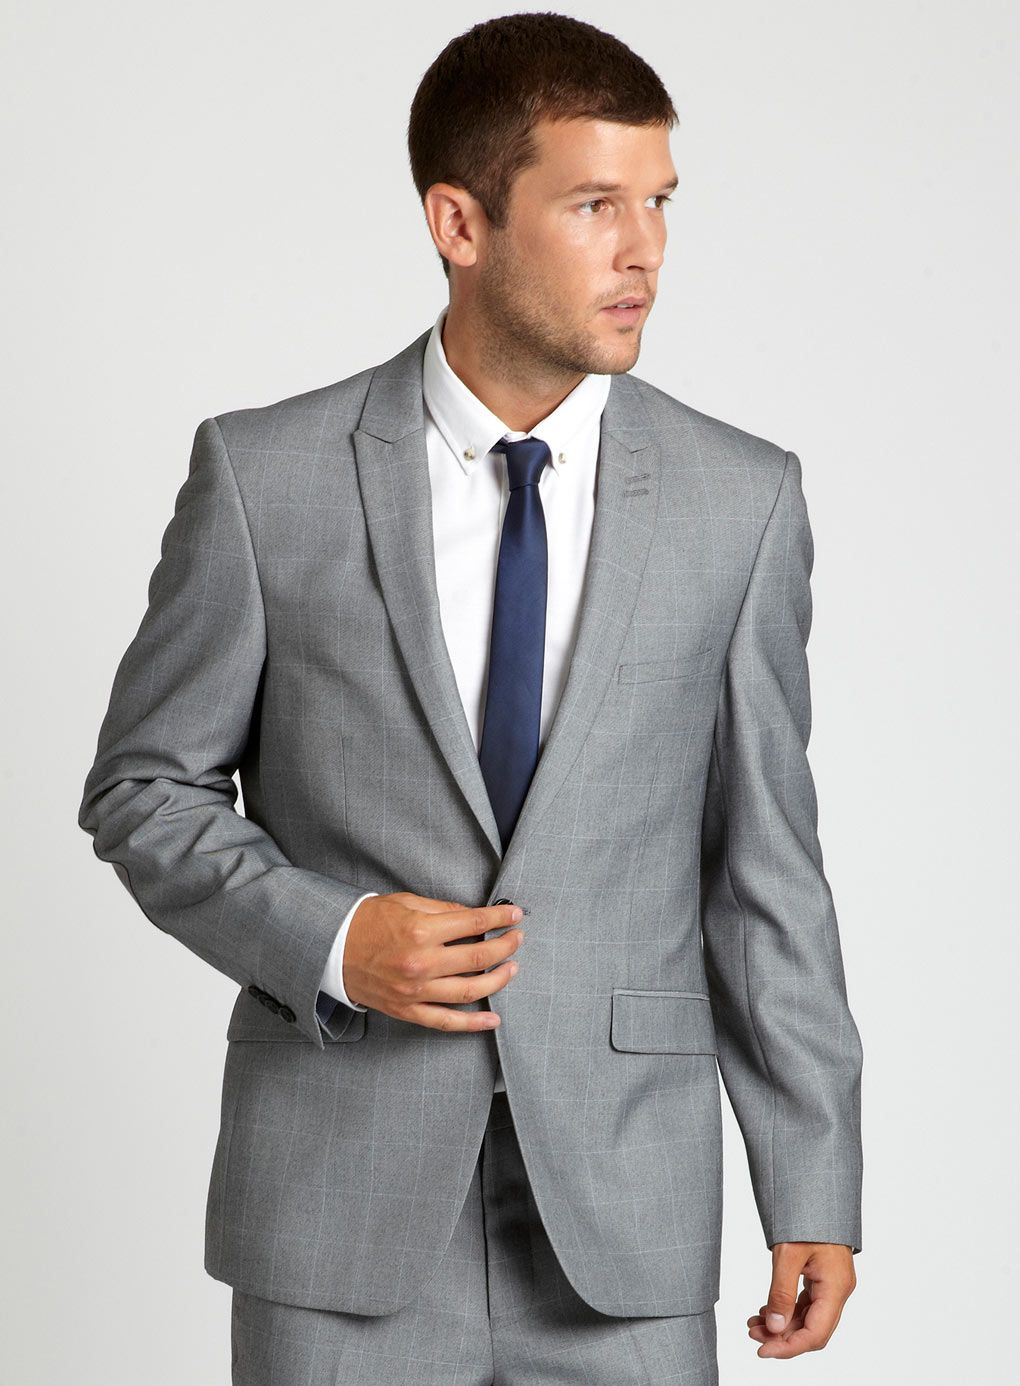 grey suit shirt tie color combinations - Google Search | Grey Suit